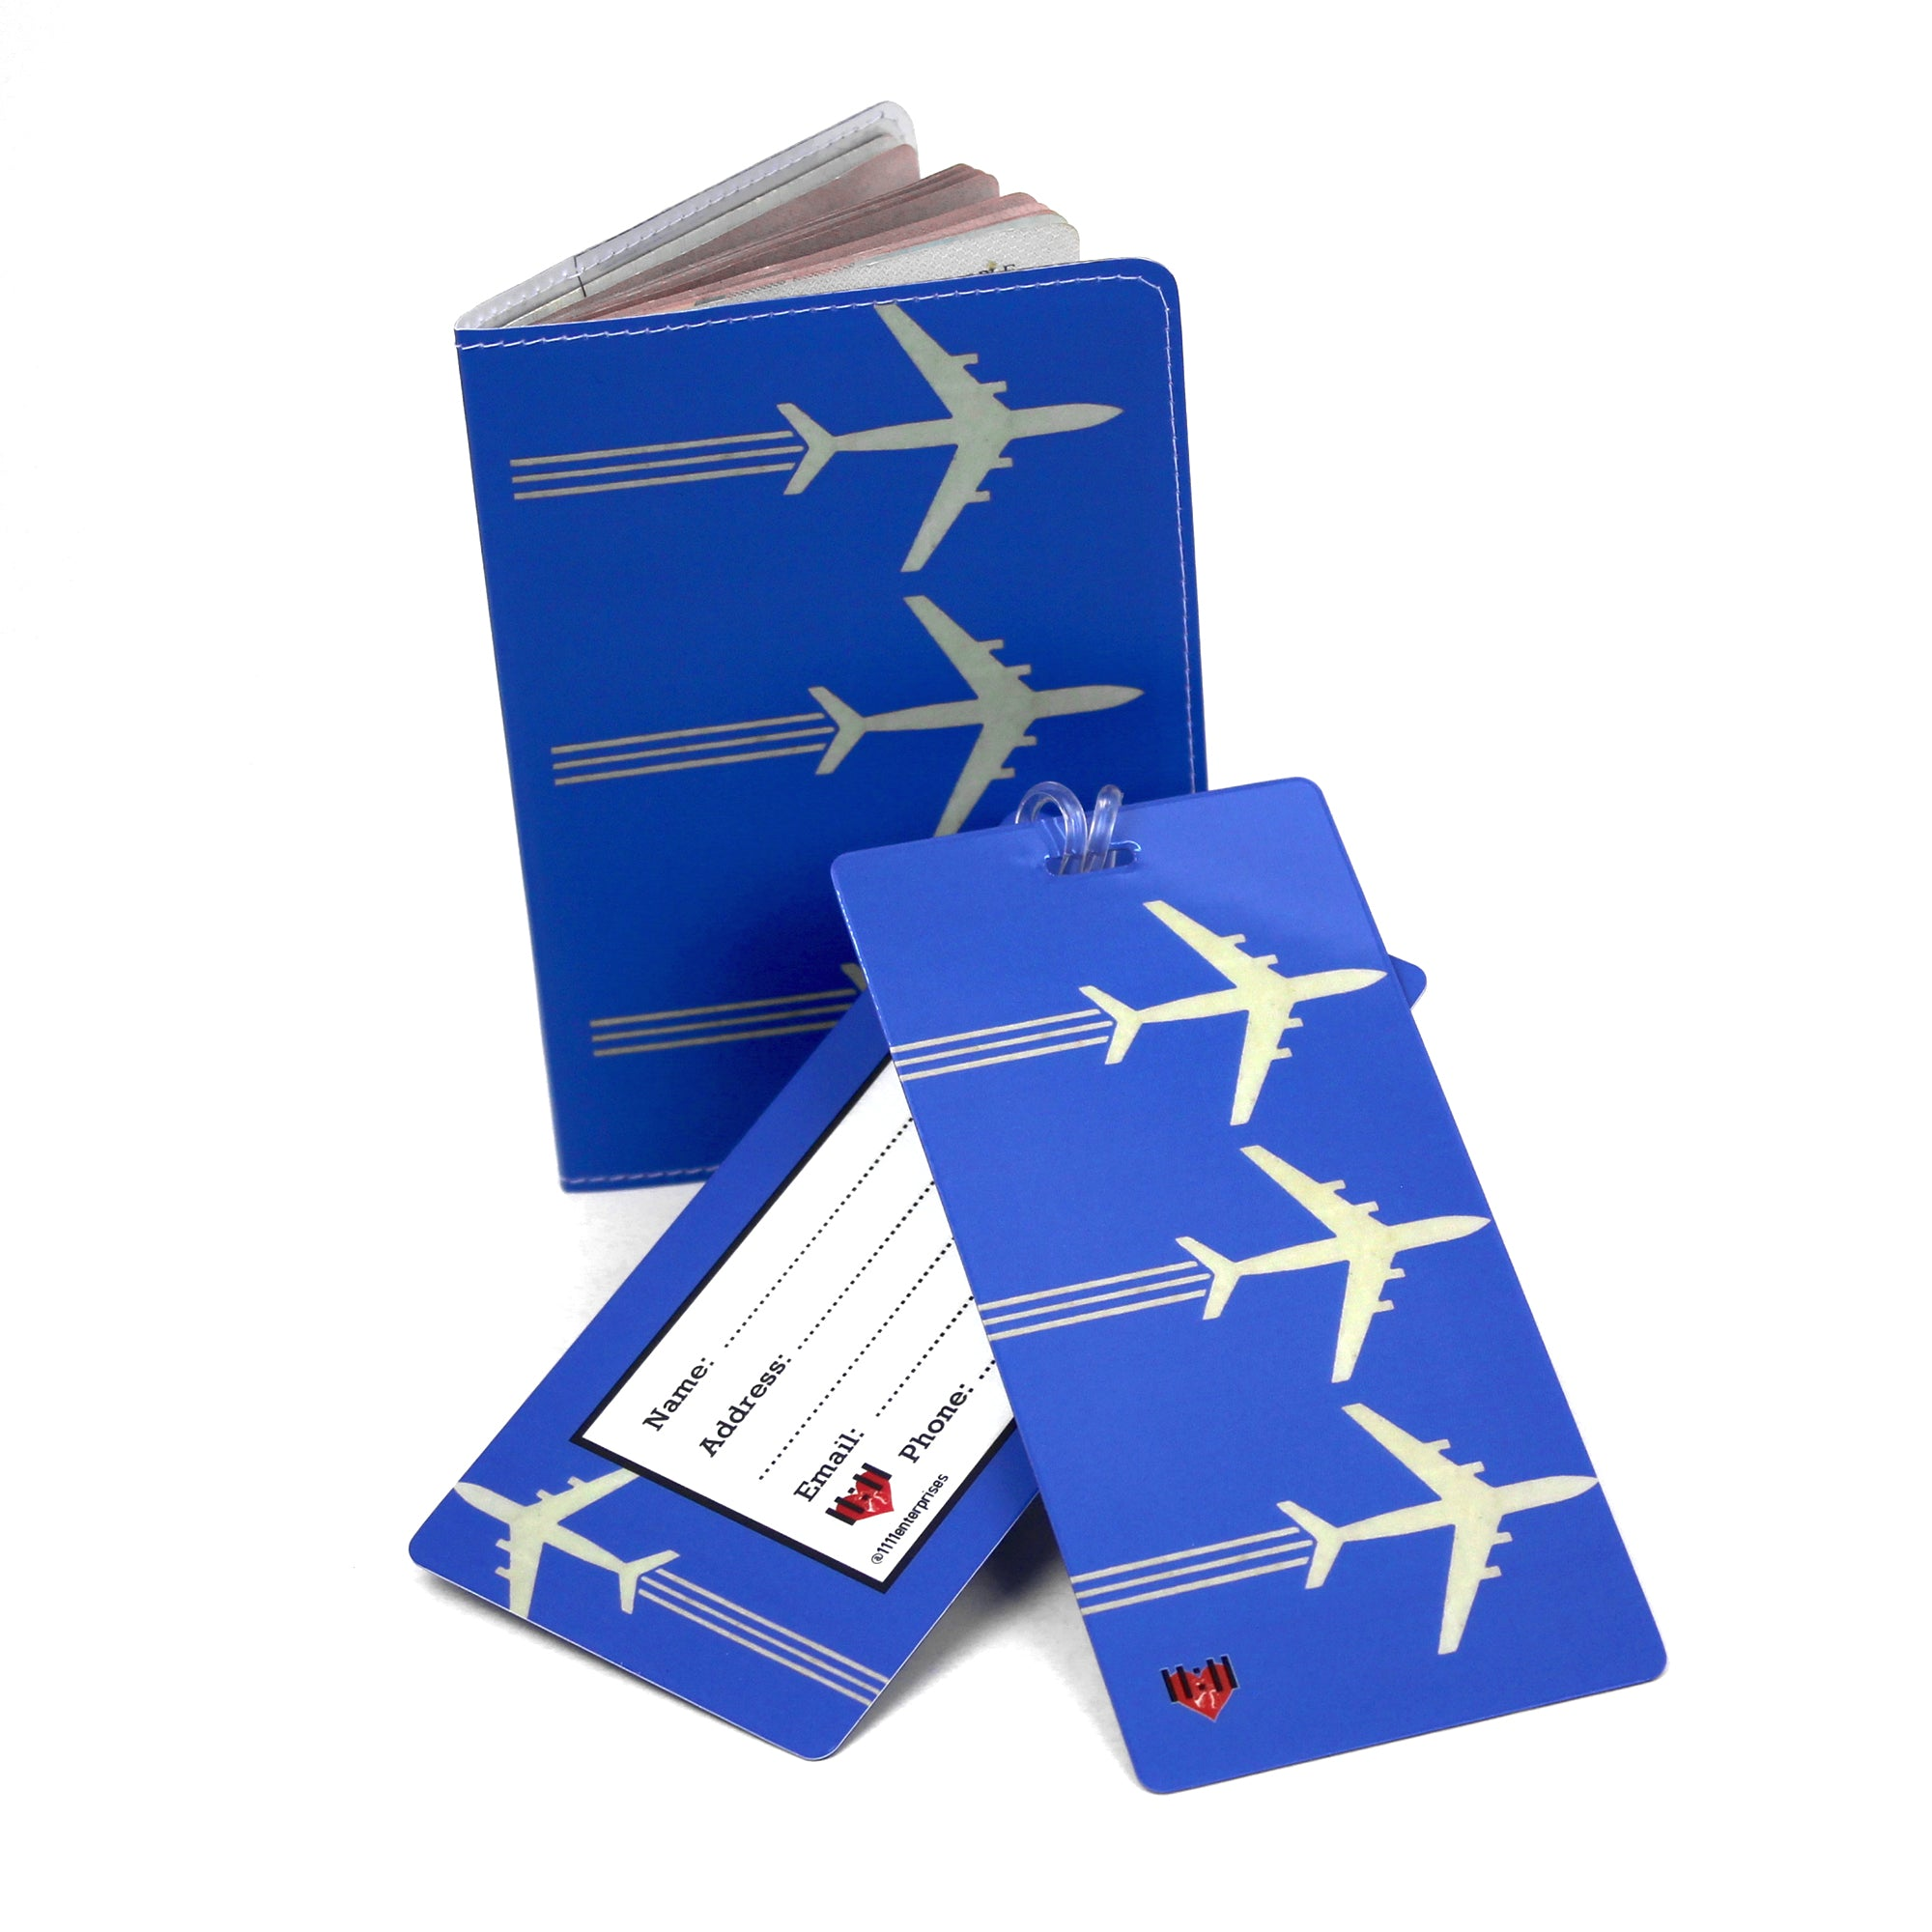 Airplanes Luggage Bag Tag Set - 2 pc, Large by 11:11 Enterprises